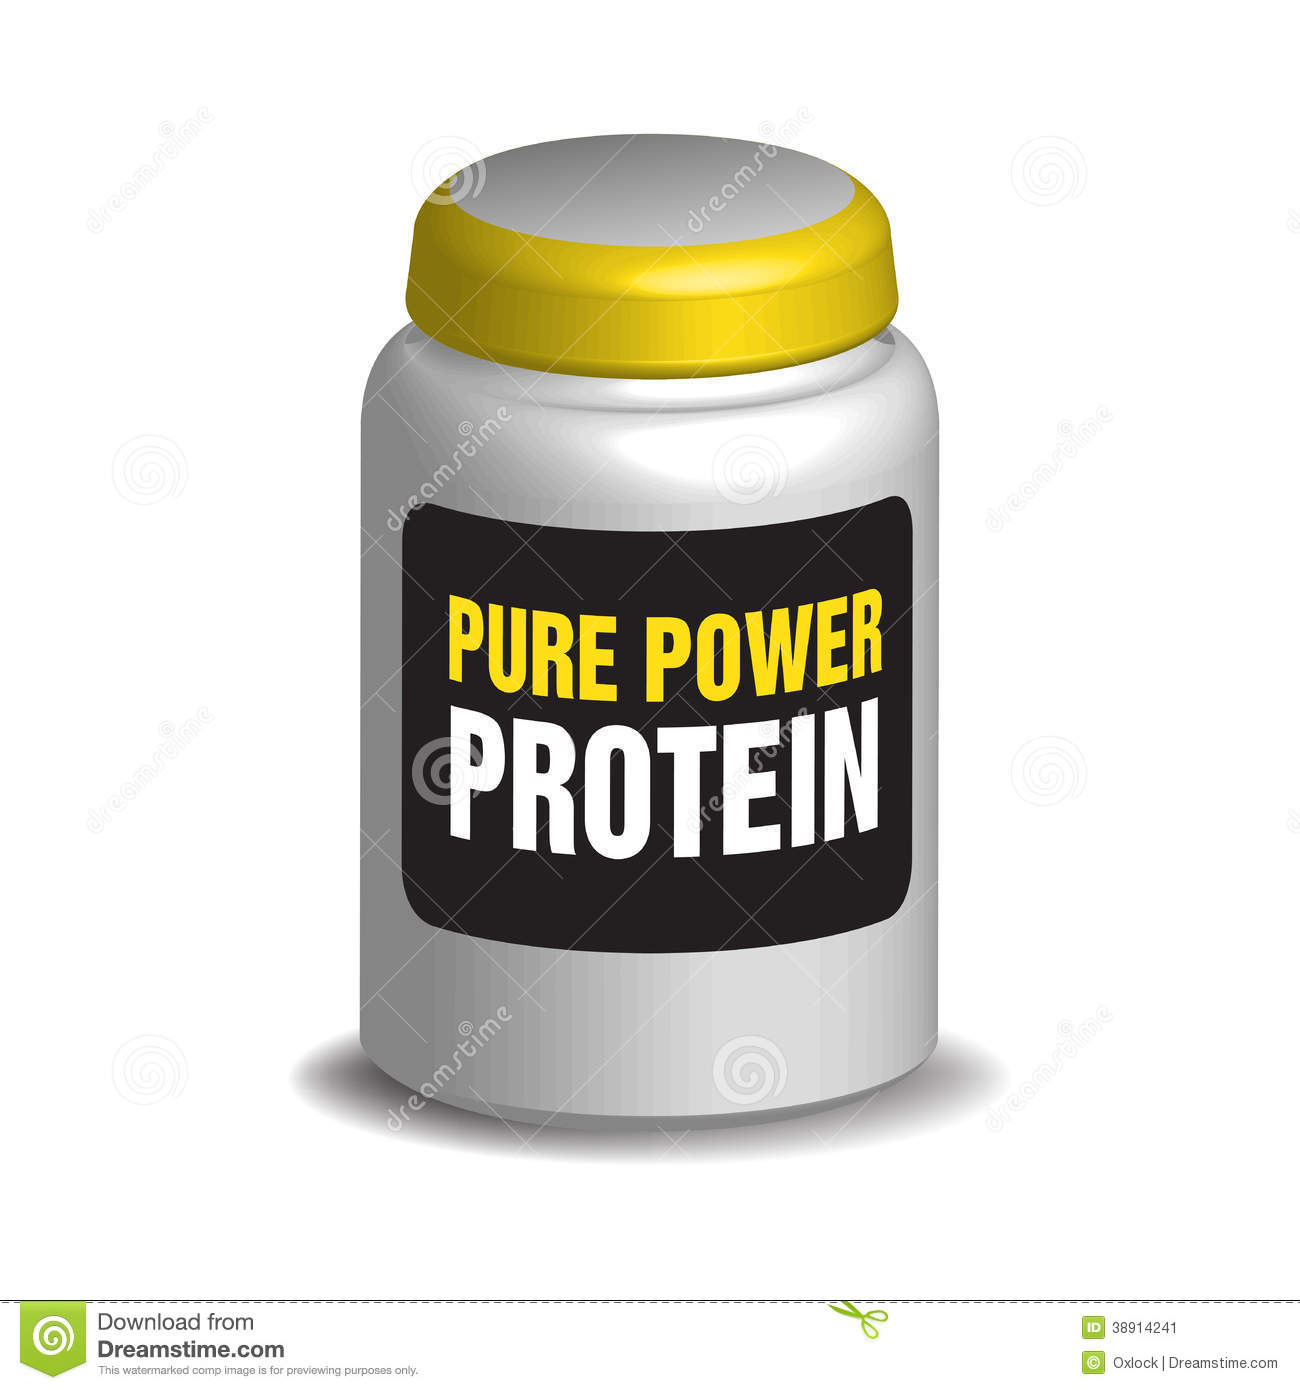 Pure Power Protein Stock Illustration - Image: 38914241